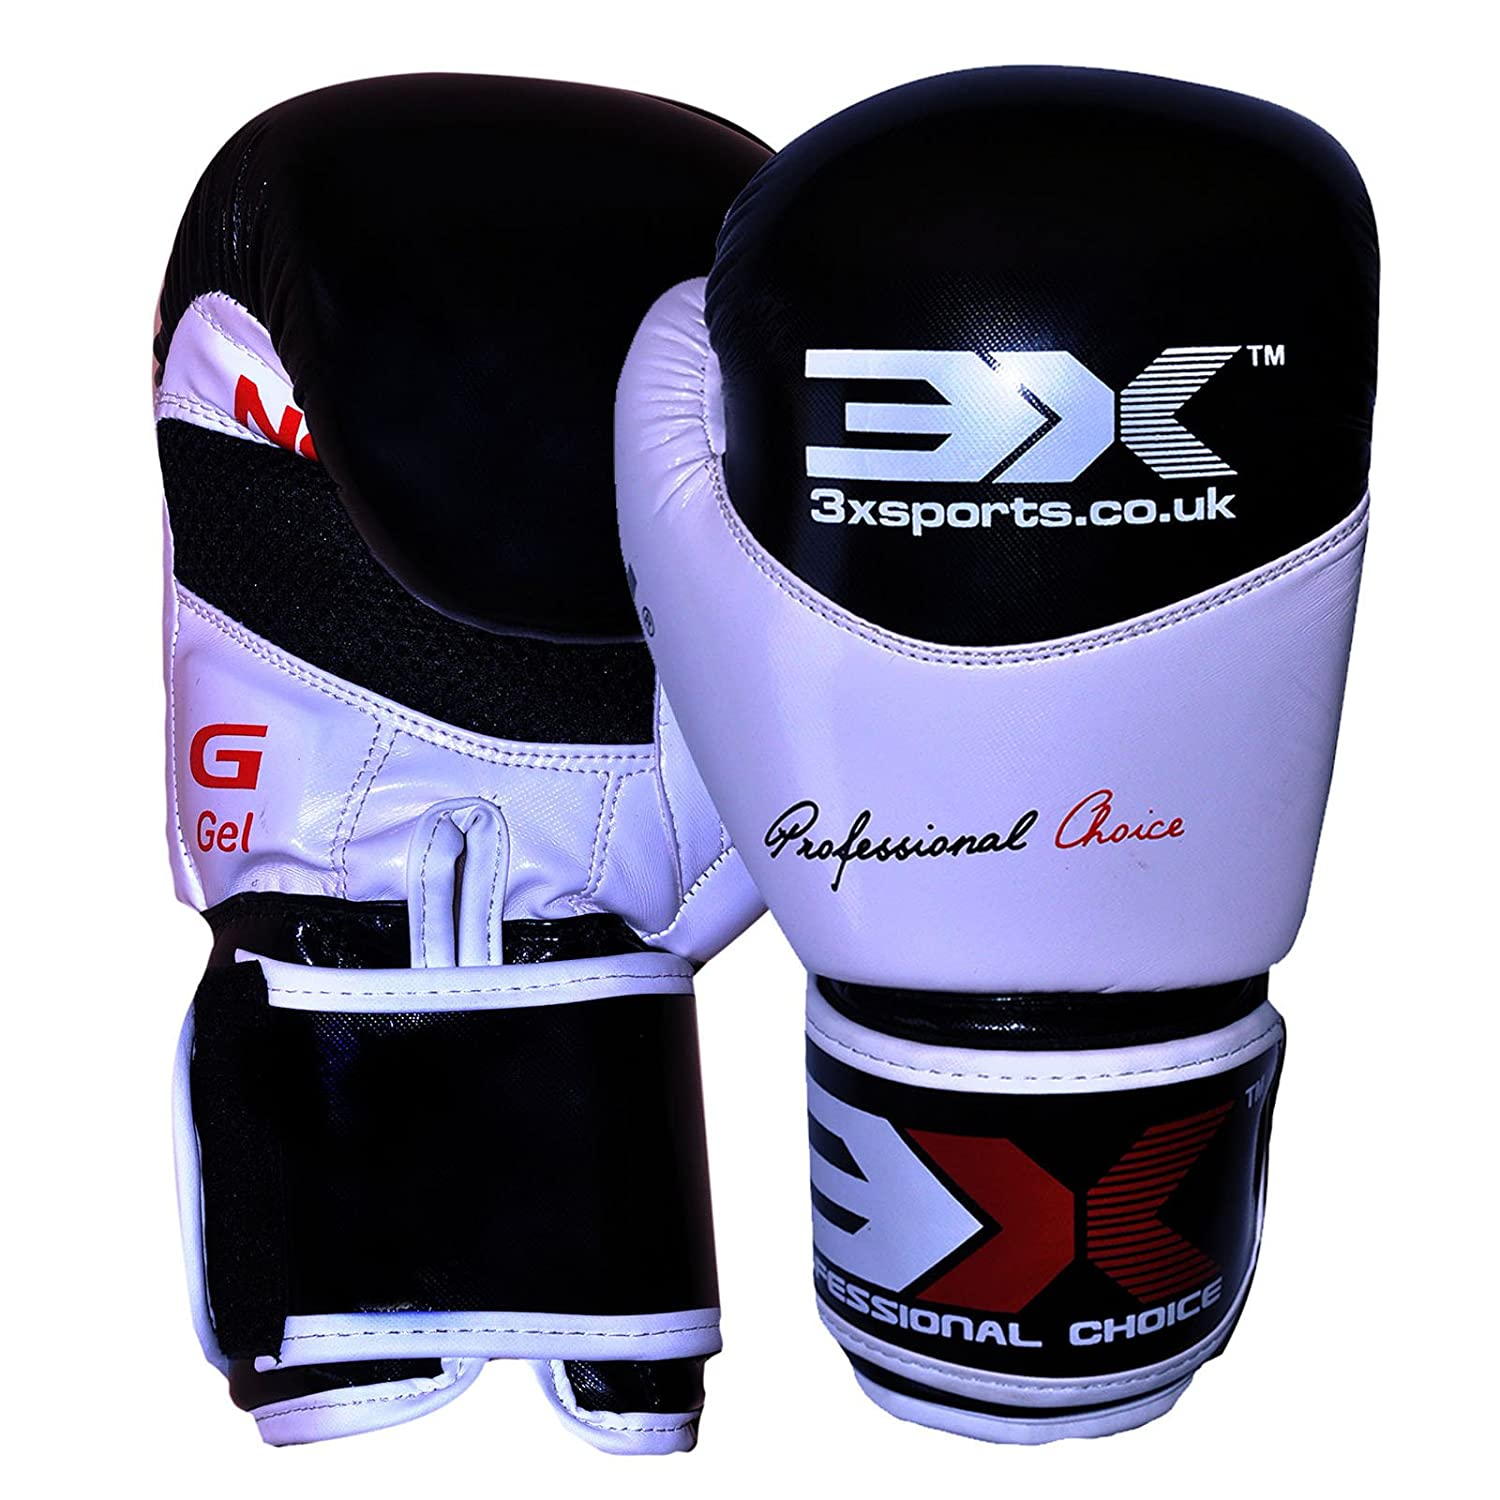 Max5 Boxing Gloves New MMA Muay Thai Punch Training Bag Mitts Sparring pads